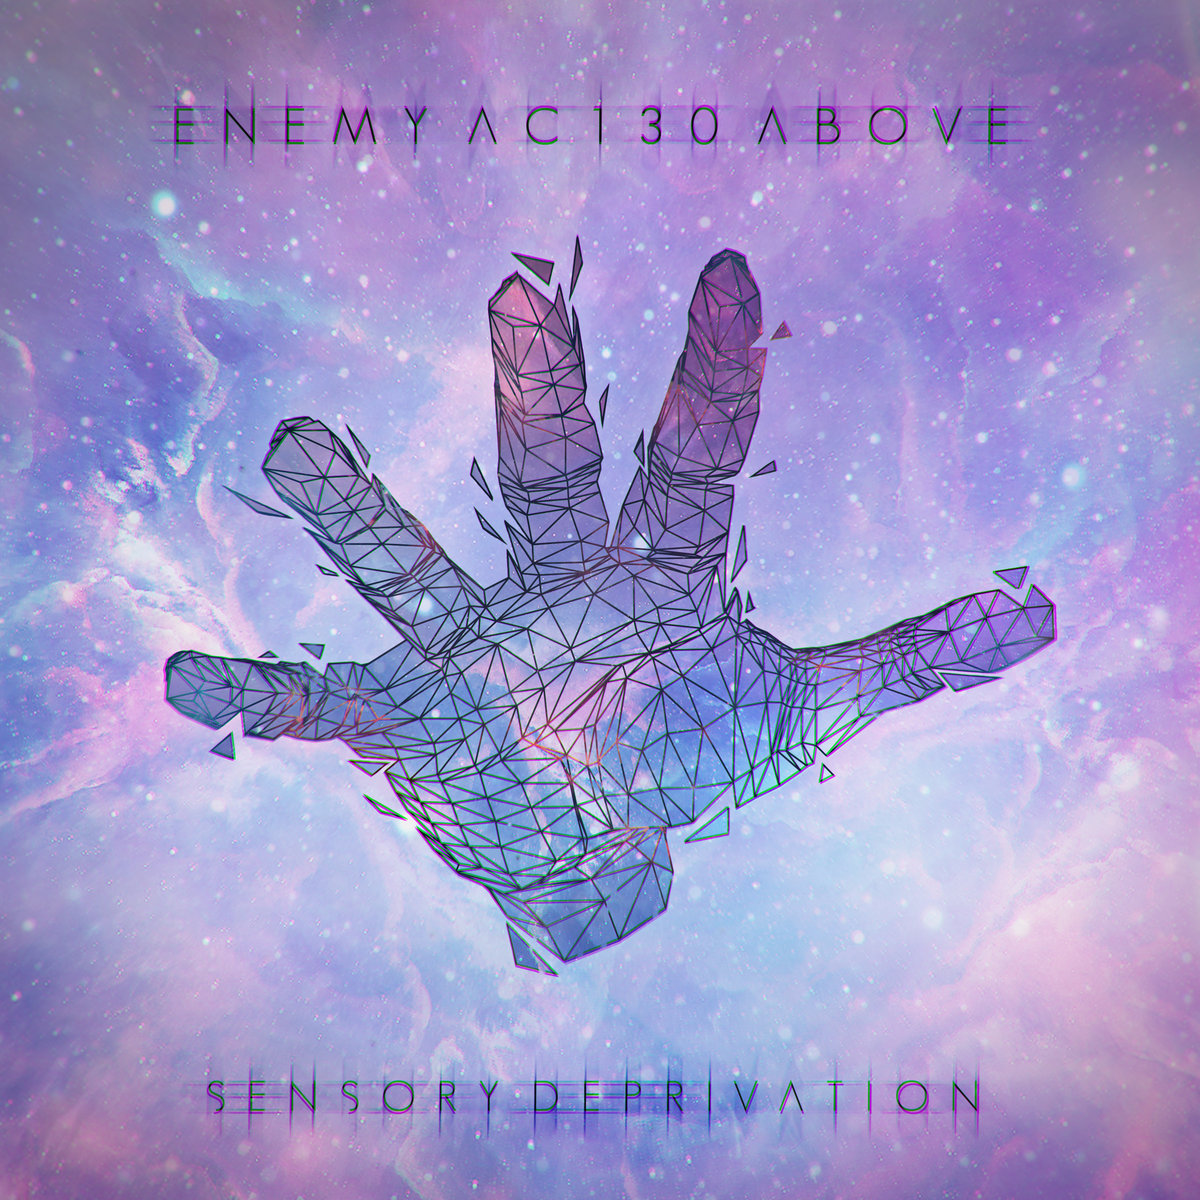 ENEMY AC130 ABOVE - Sensory Deprivation [single] (2016)